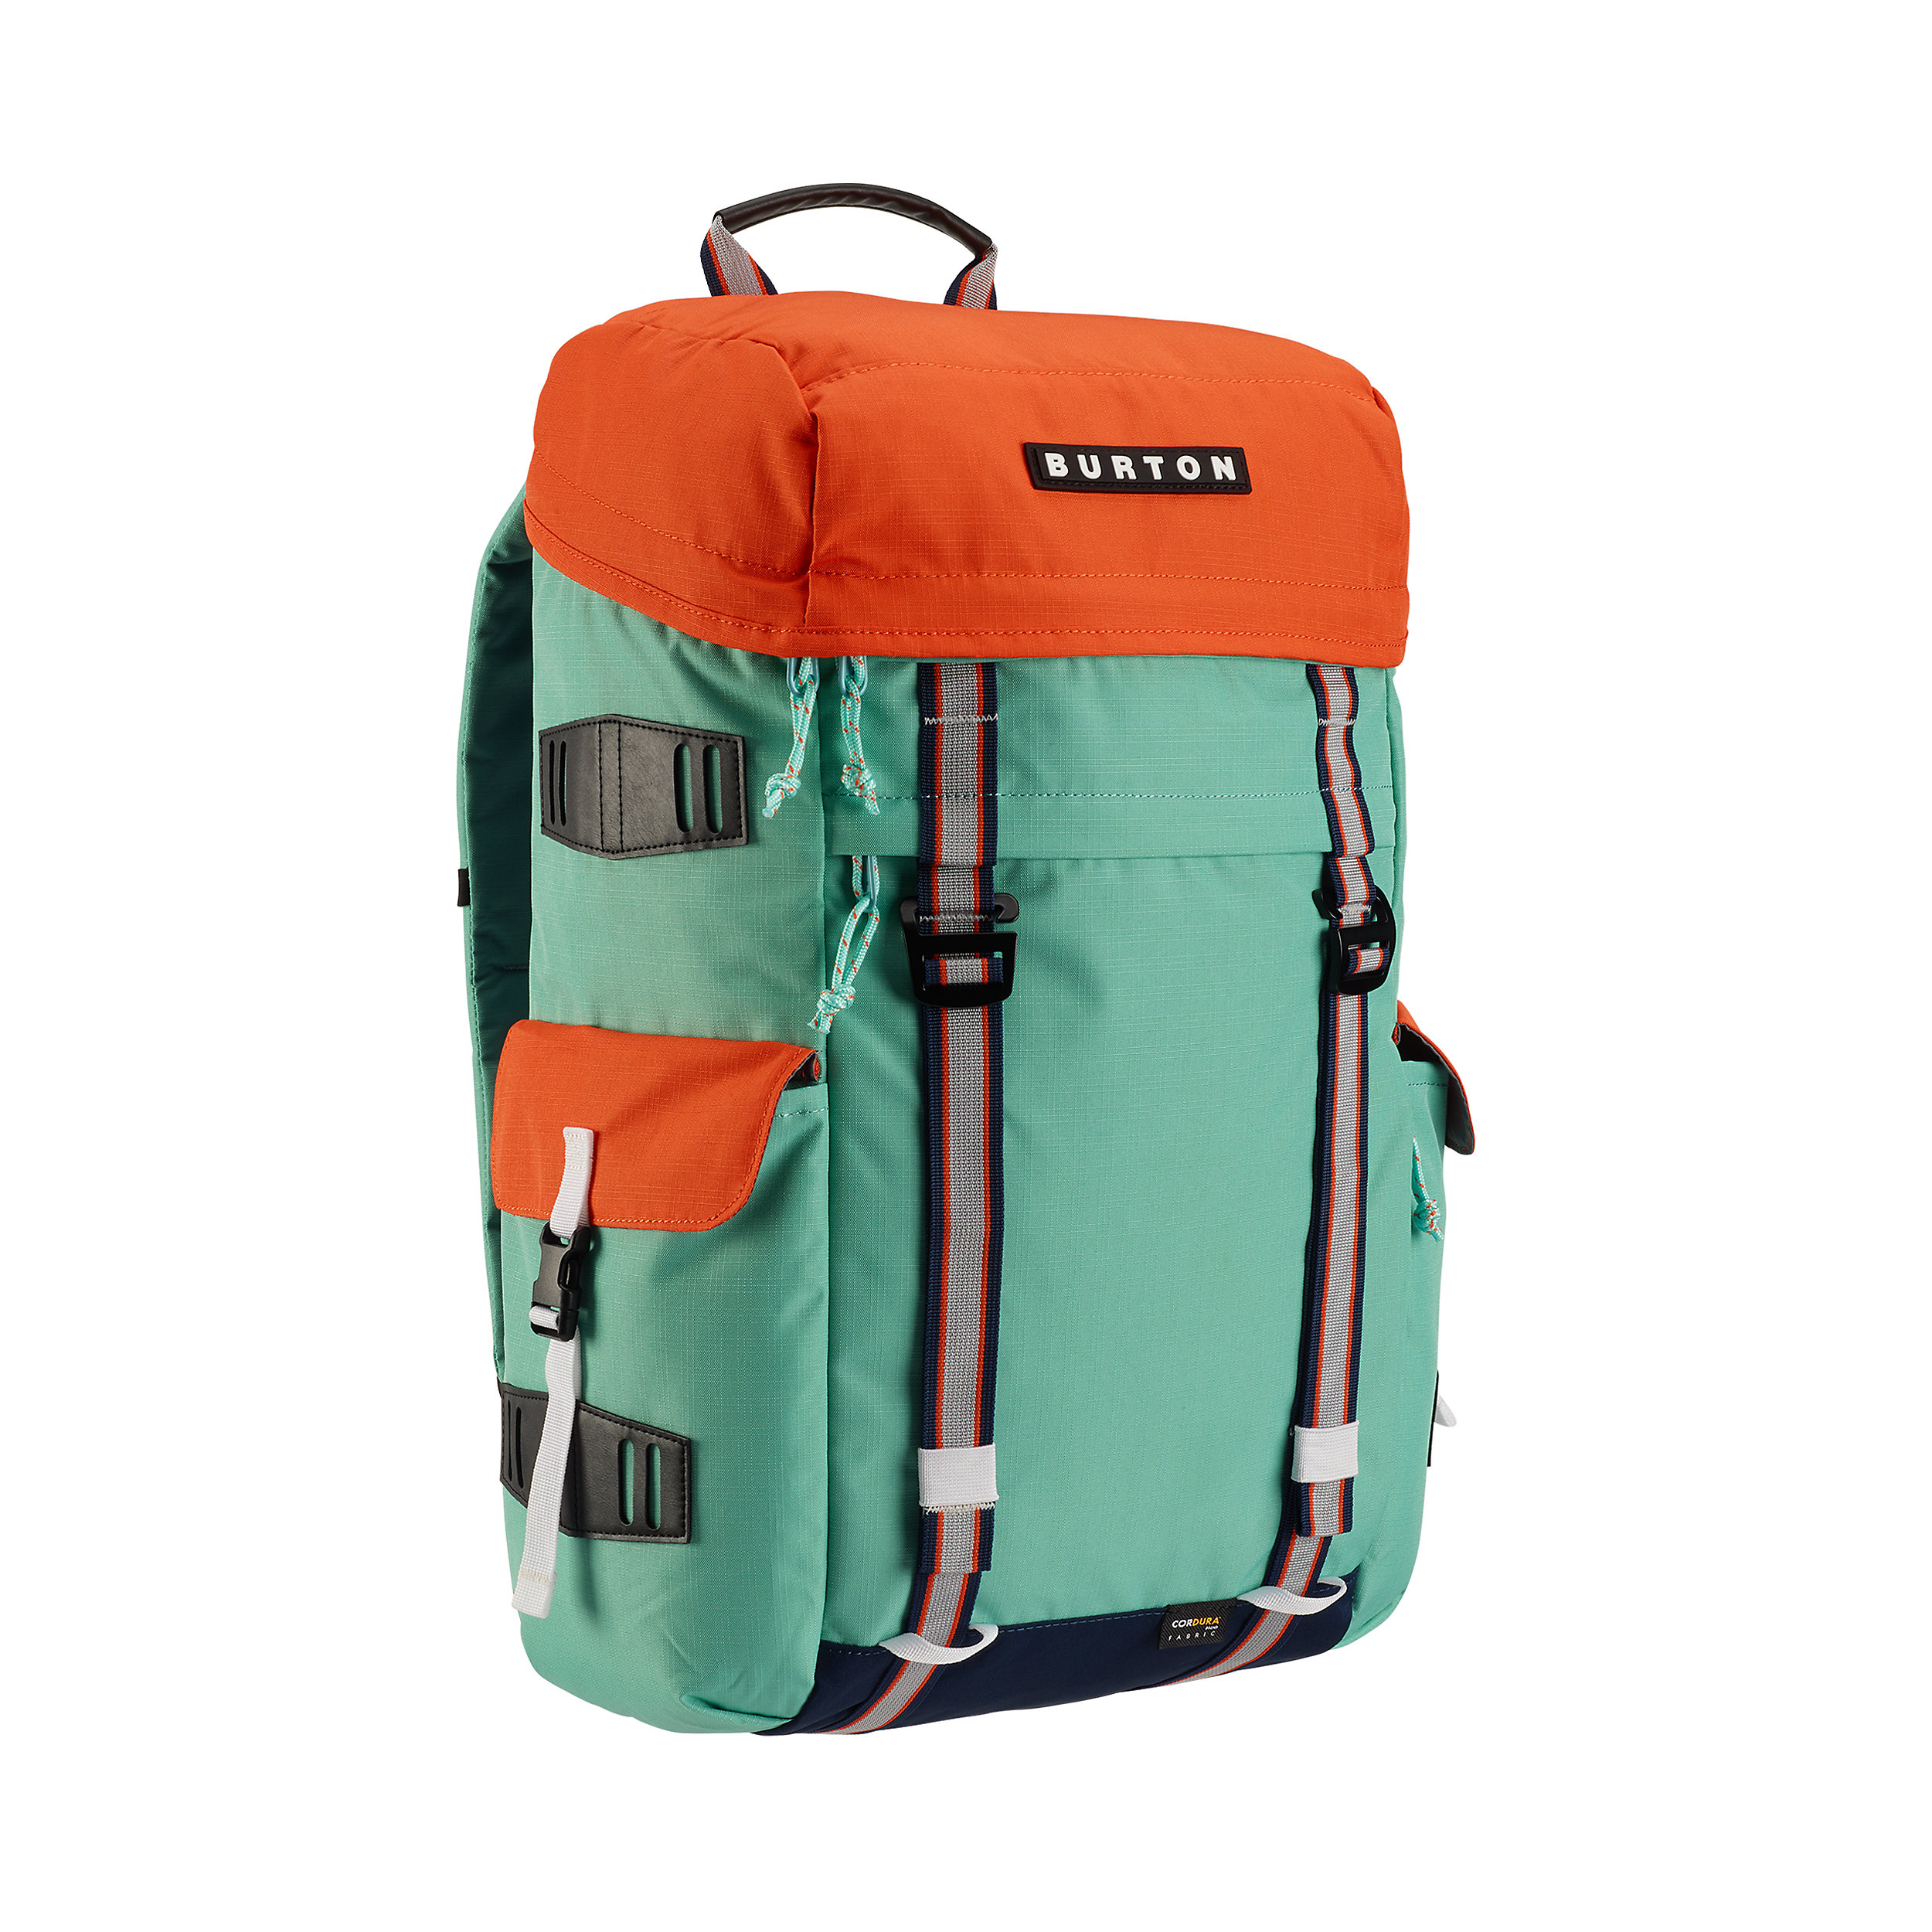 Backpack Anex 18 inch 28 Liter